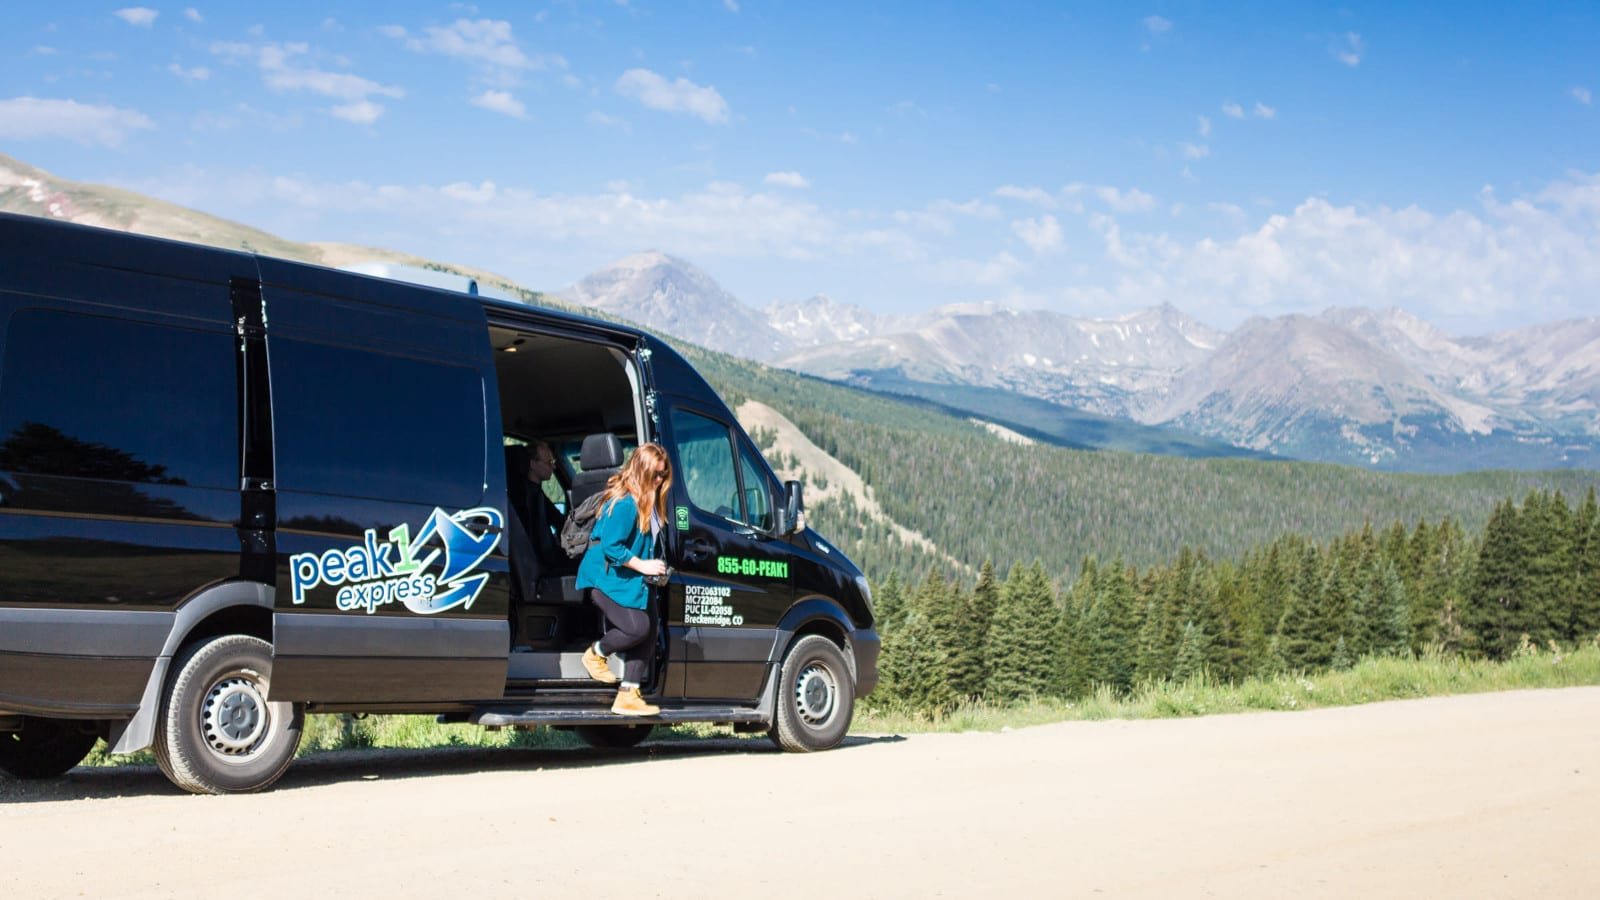 Colorado Without Car Peak1Express Mountain Shuttle Summit County